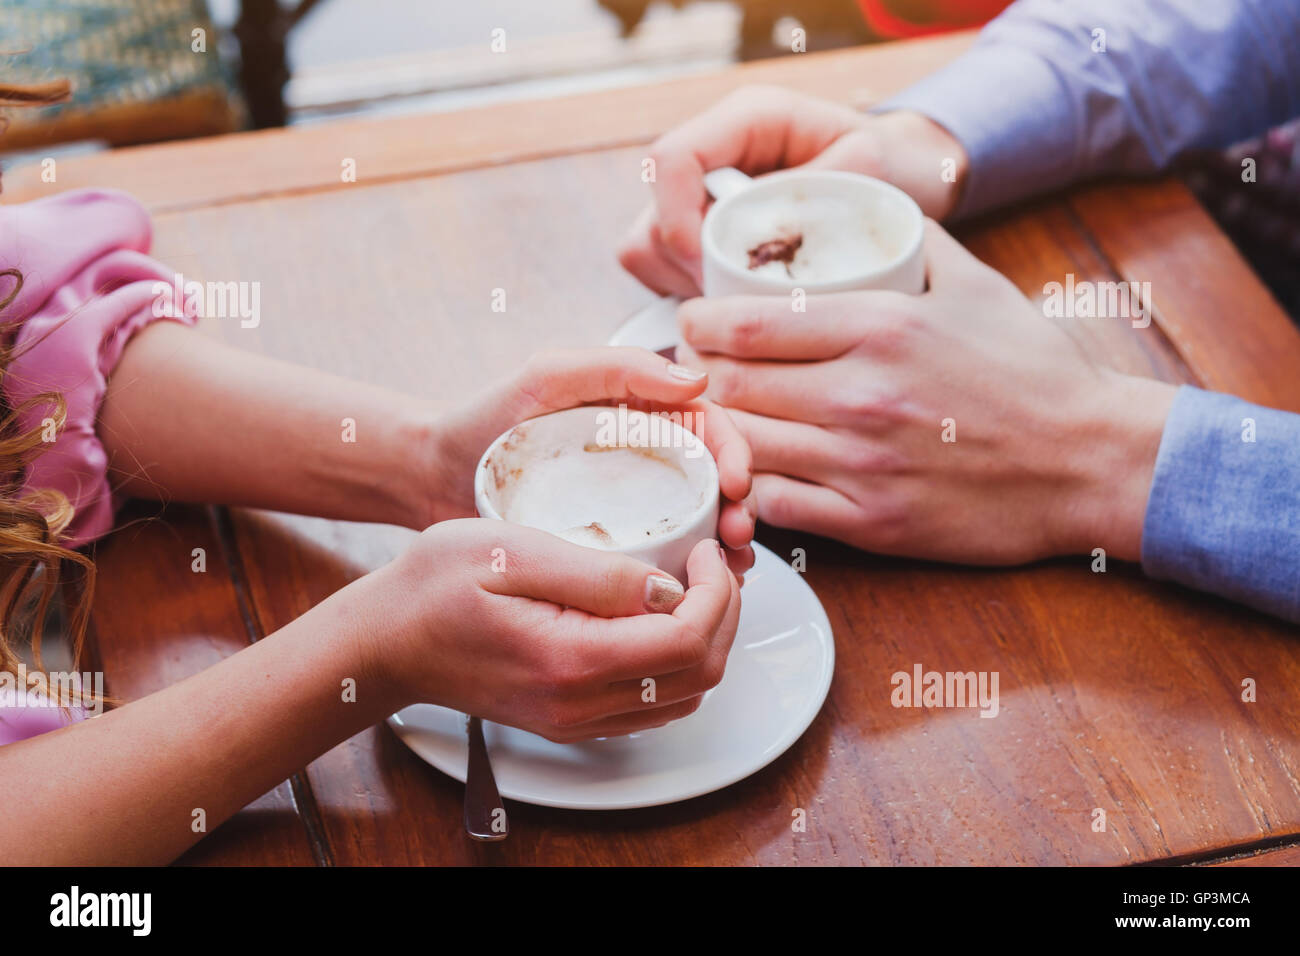 people drinking coffee in cafe, closeup of couple hands with cups - Stock Image